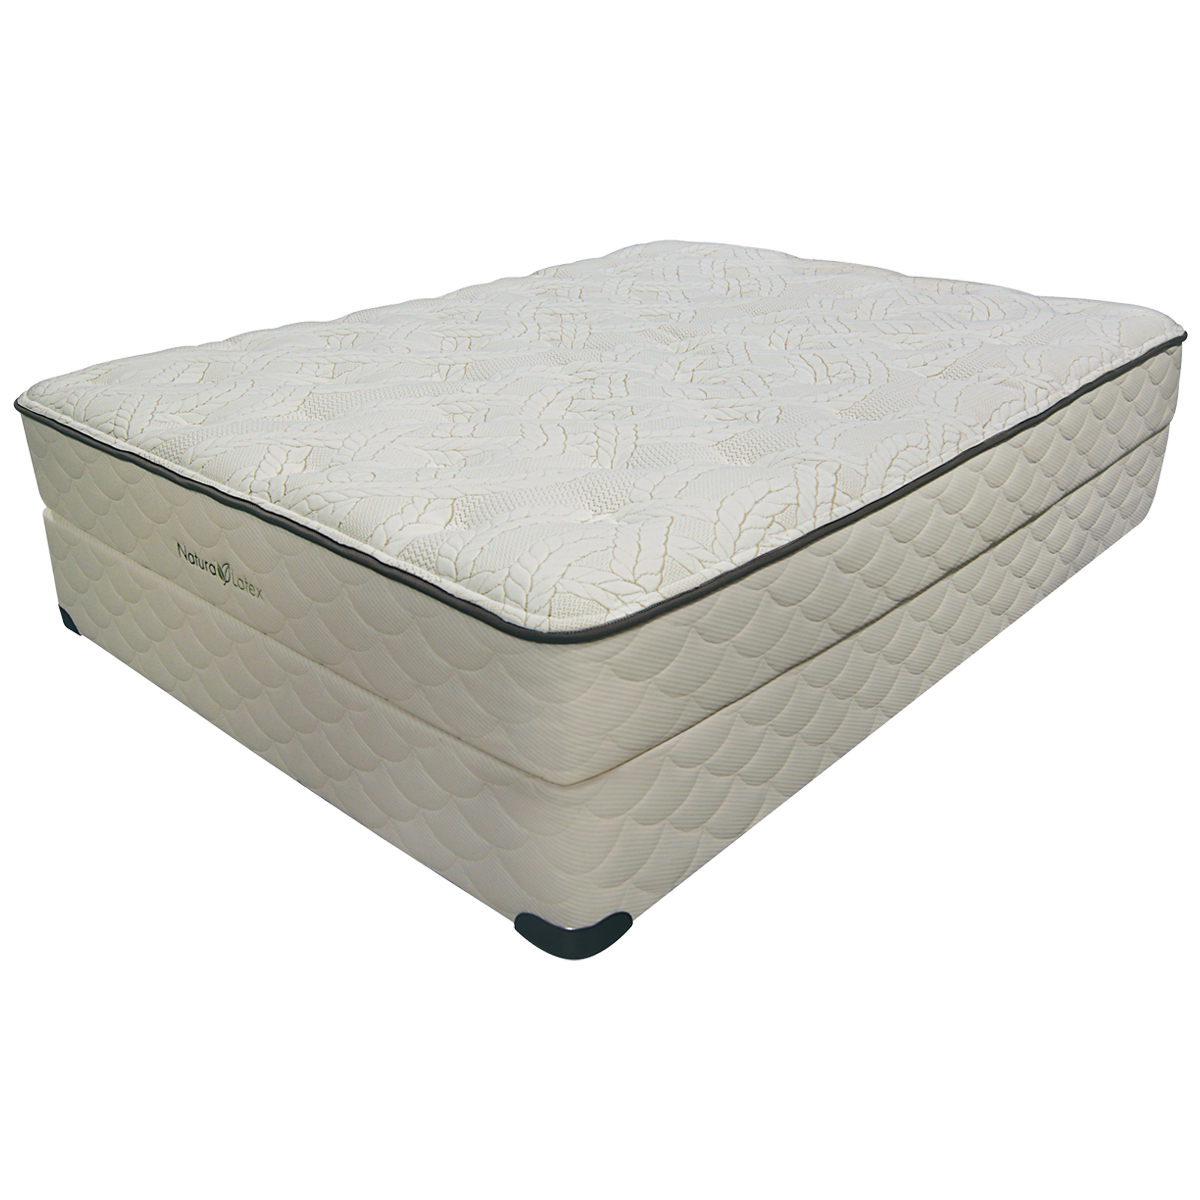 All Latex For A Comfortable Mattress That Will Stay